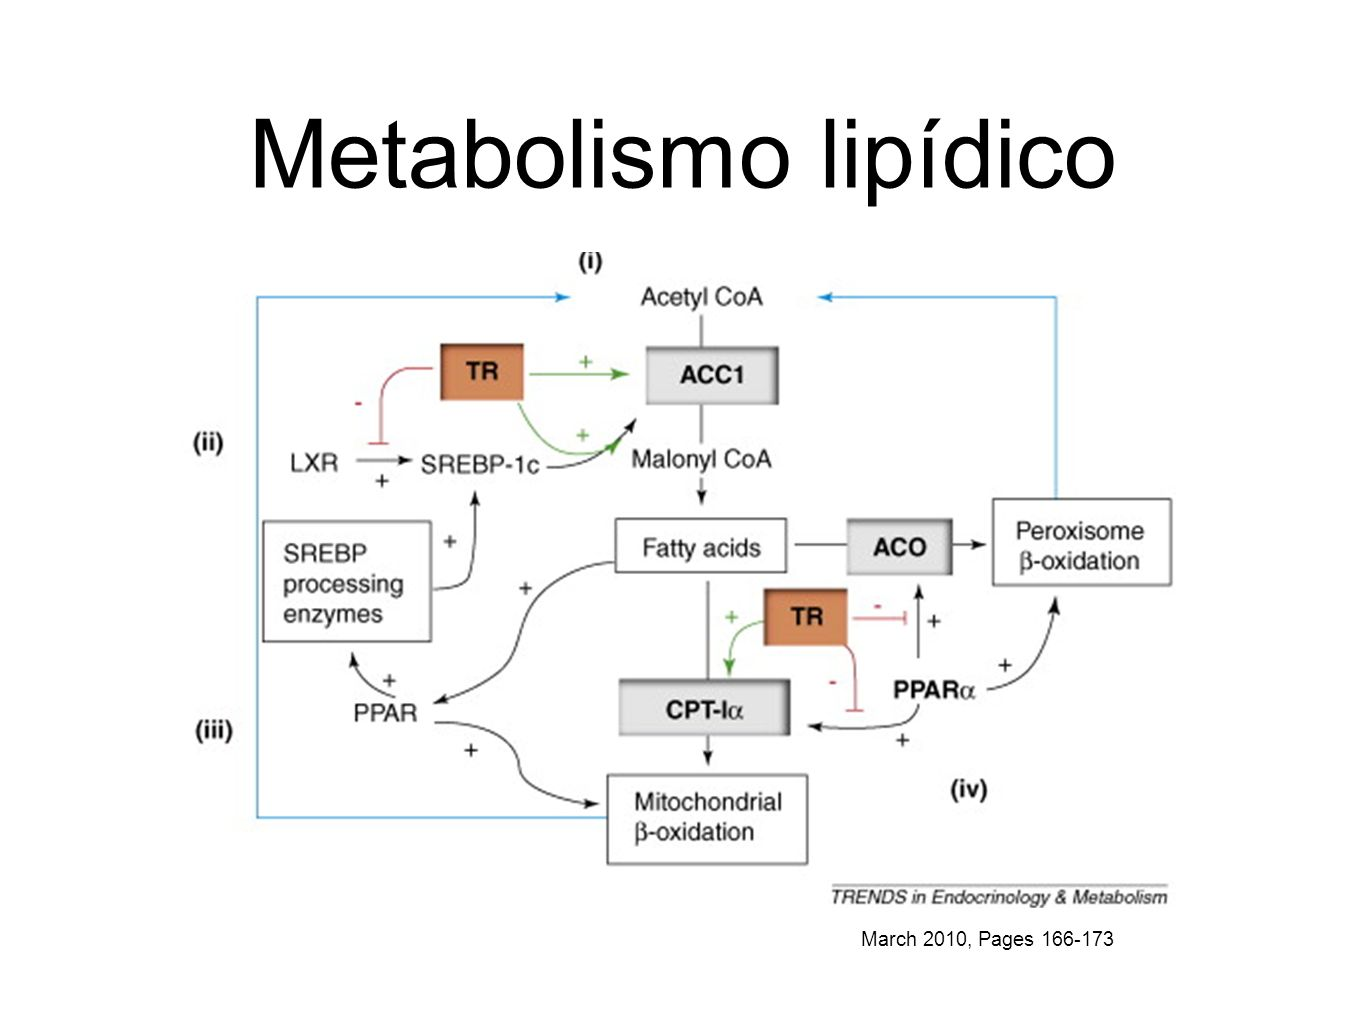 Metabolismo lipídico March 2010, Pages